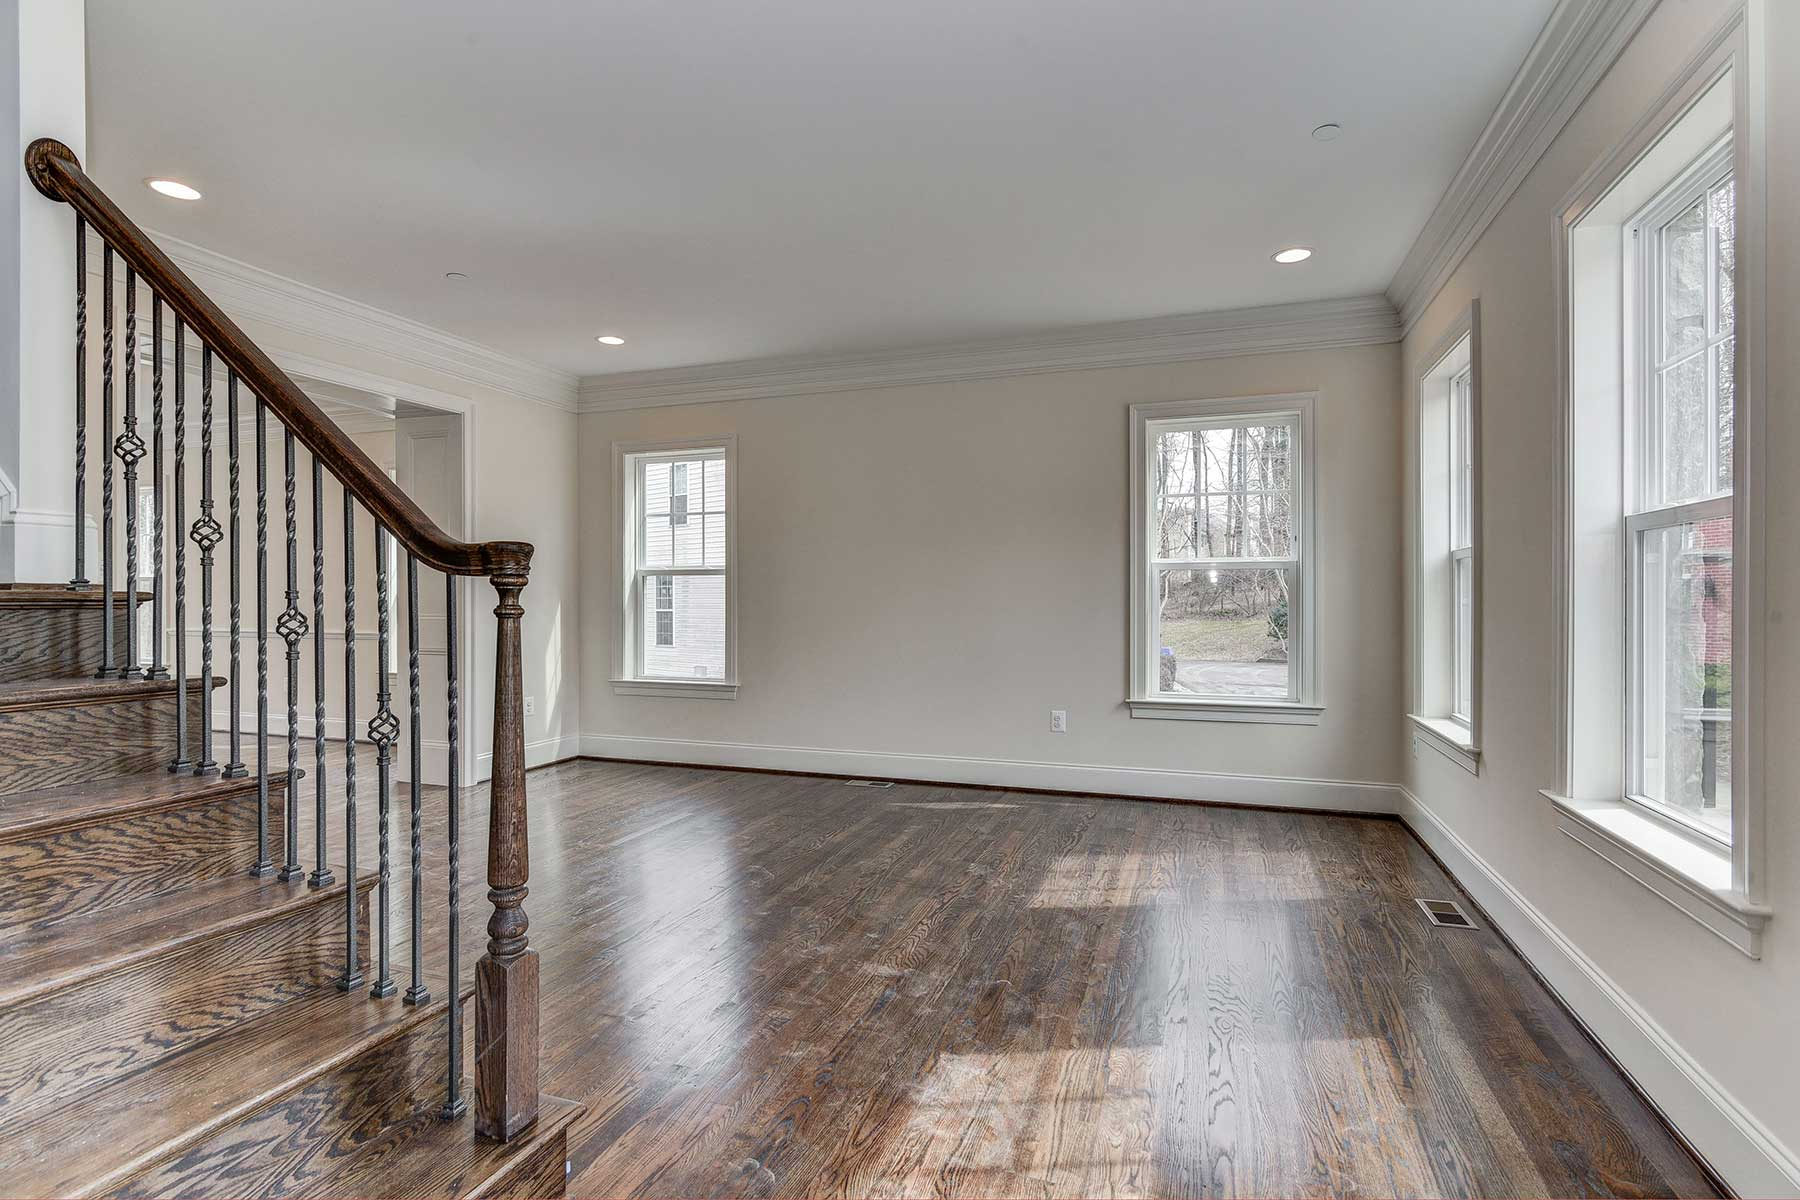 Living Space, Finished Custom Home, Chevy Chase, Gaithersburg, Craftmark Homes